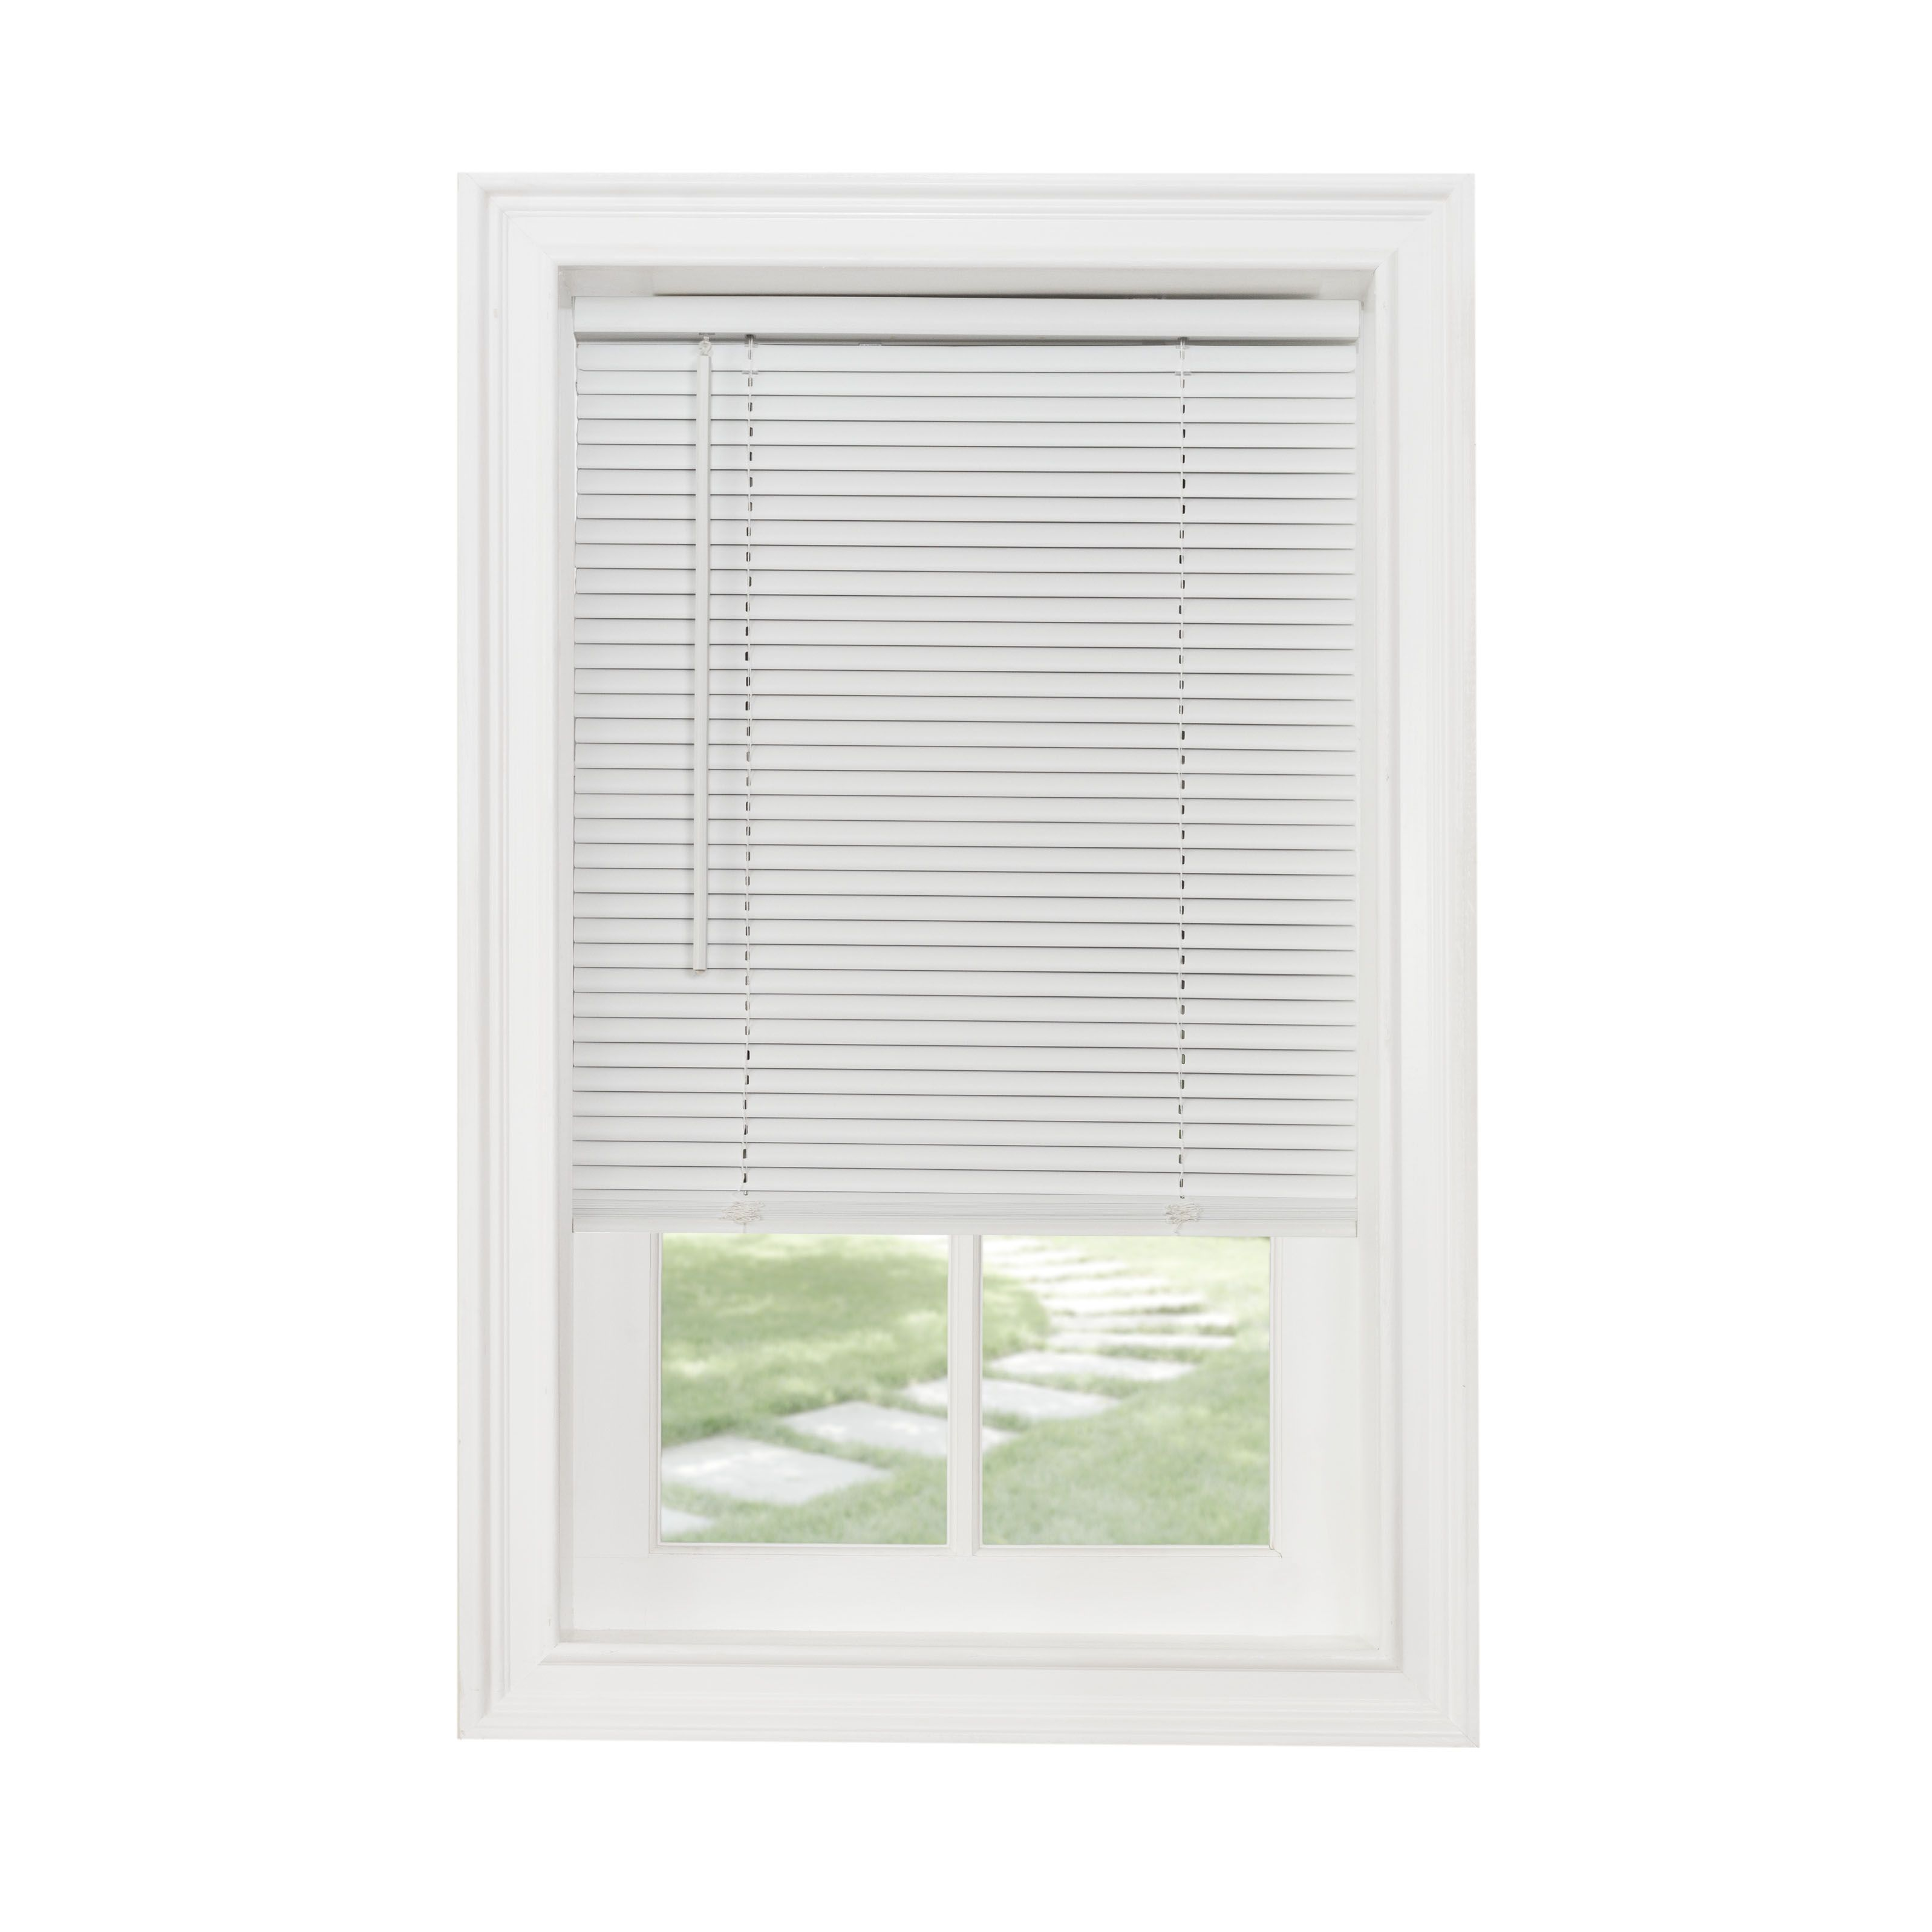 Free 2 Day Shipping Buy Achim Cordless Gii Morningstar 1 Light Filtering Mini Window Blind White At Walmar Horizontal Blinds Blinds For Windows Vinyl Blinds